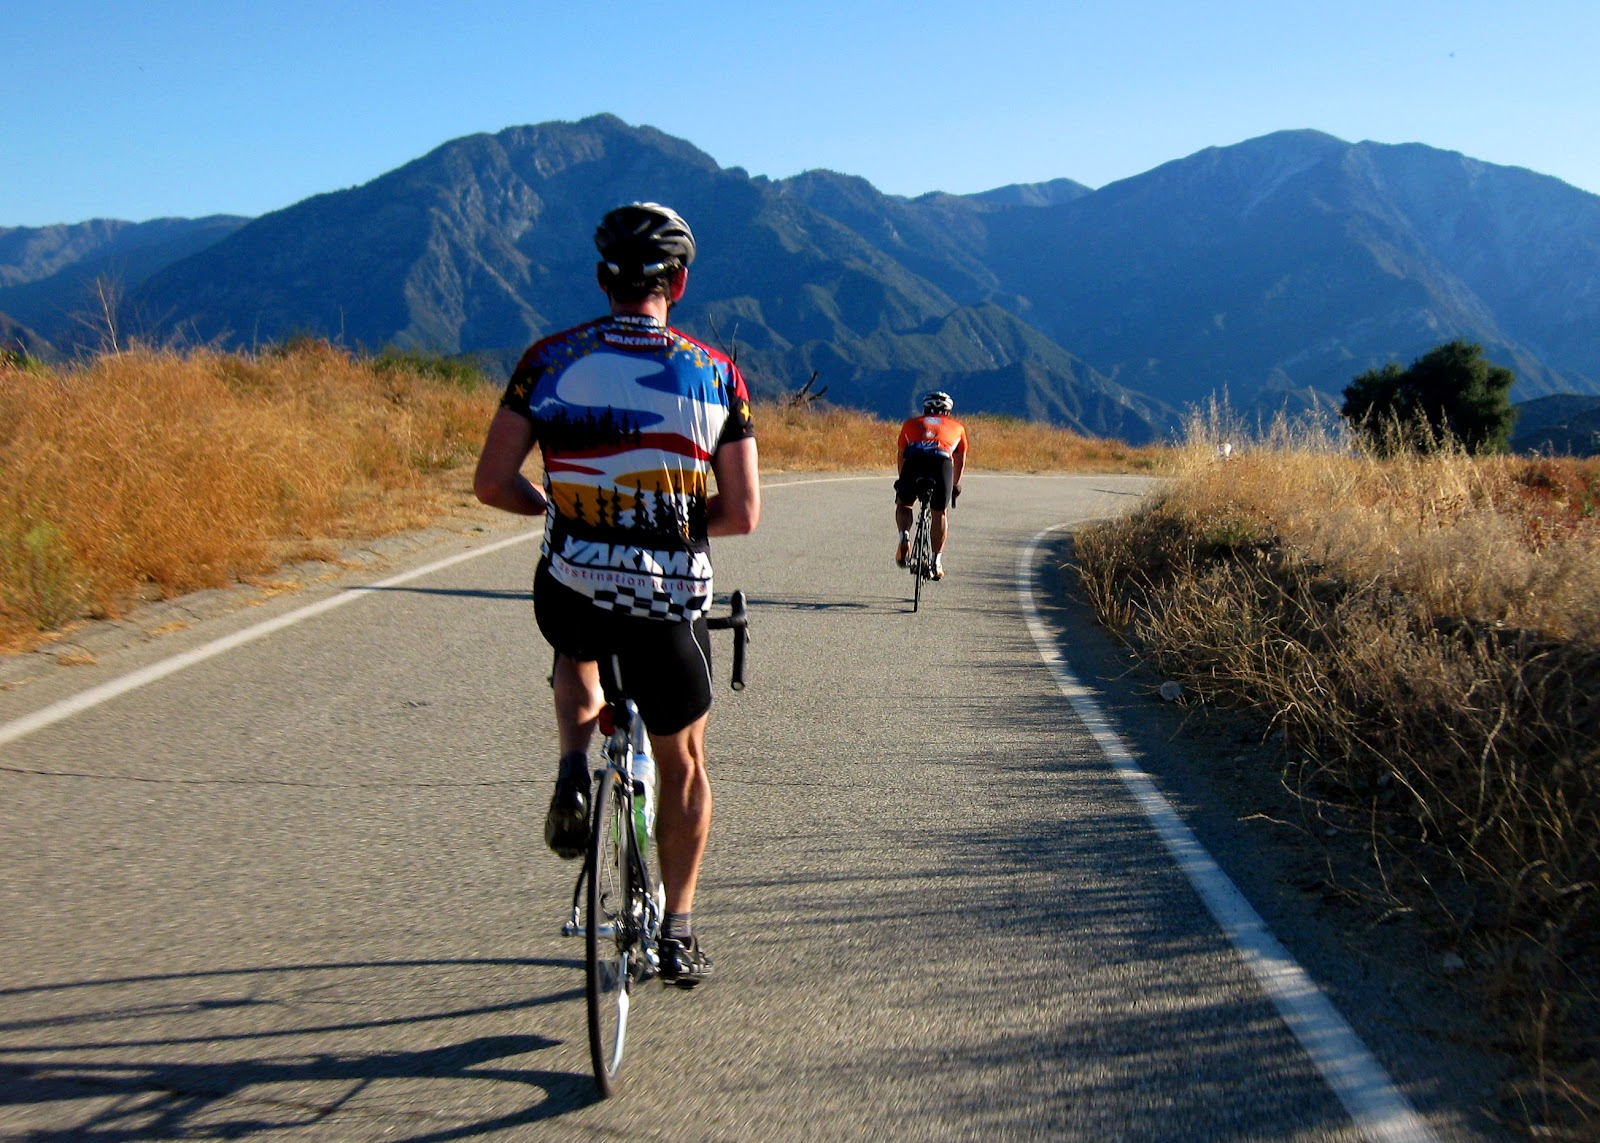 BicycleFriendscom Pomona to Azusa to East Fork to GMR to Baldy then Home